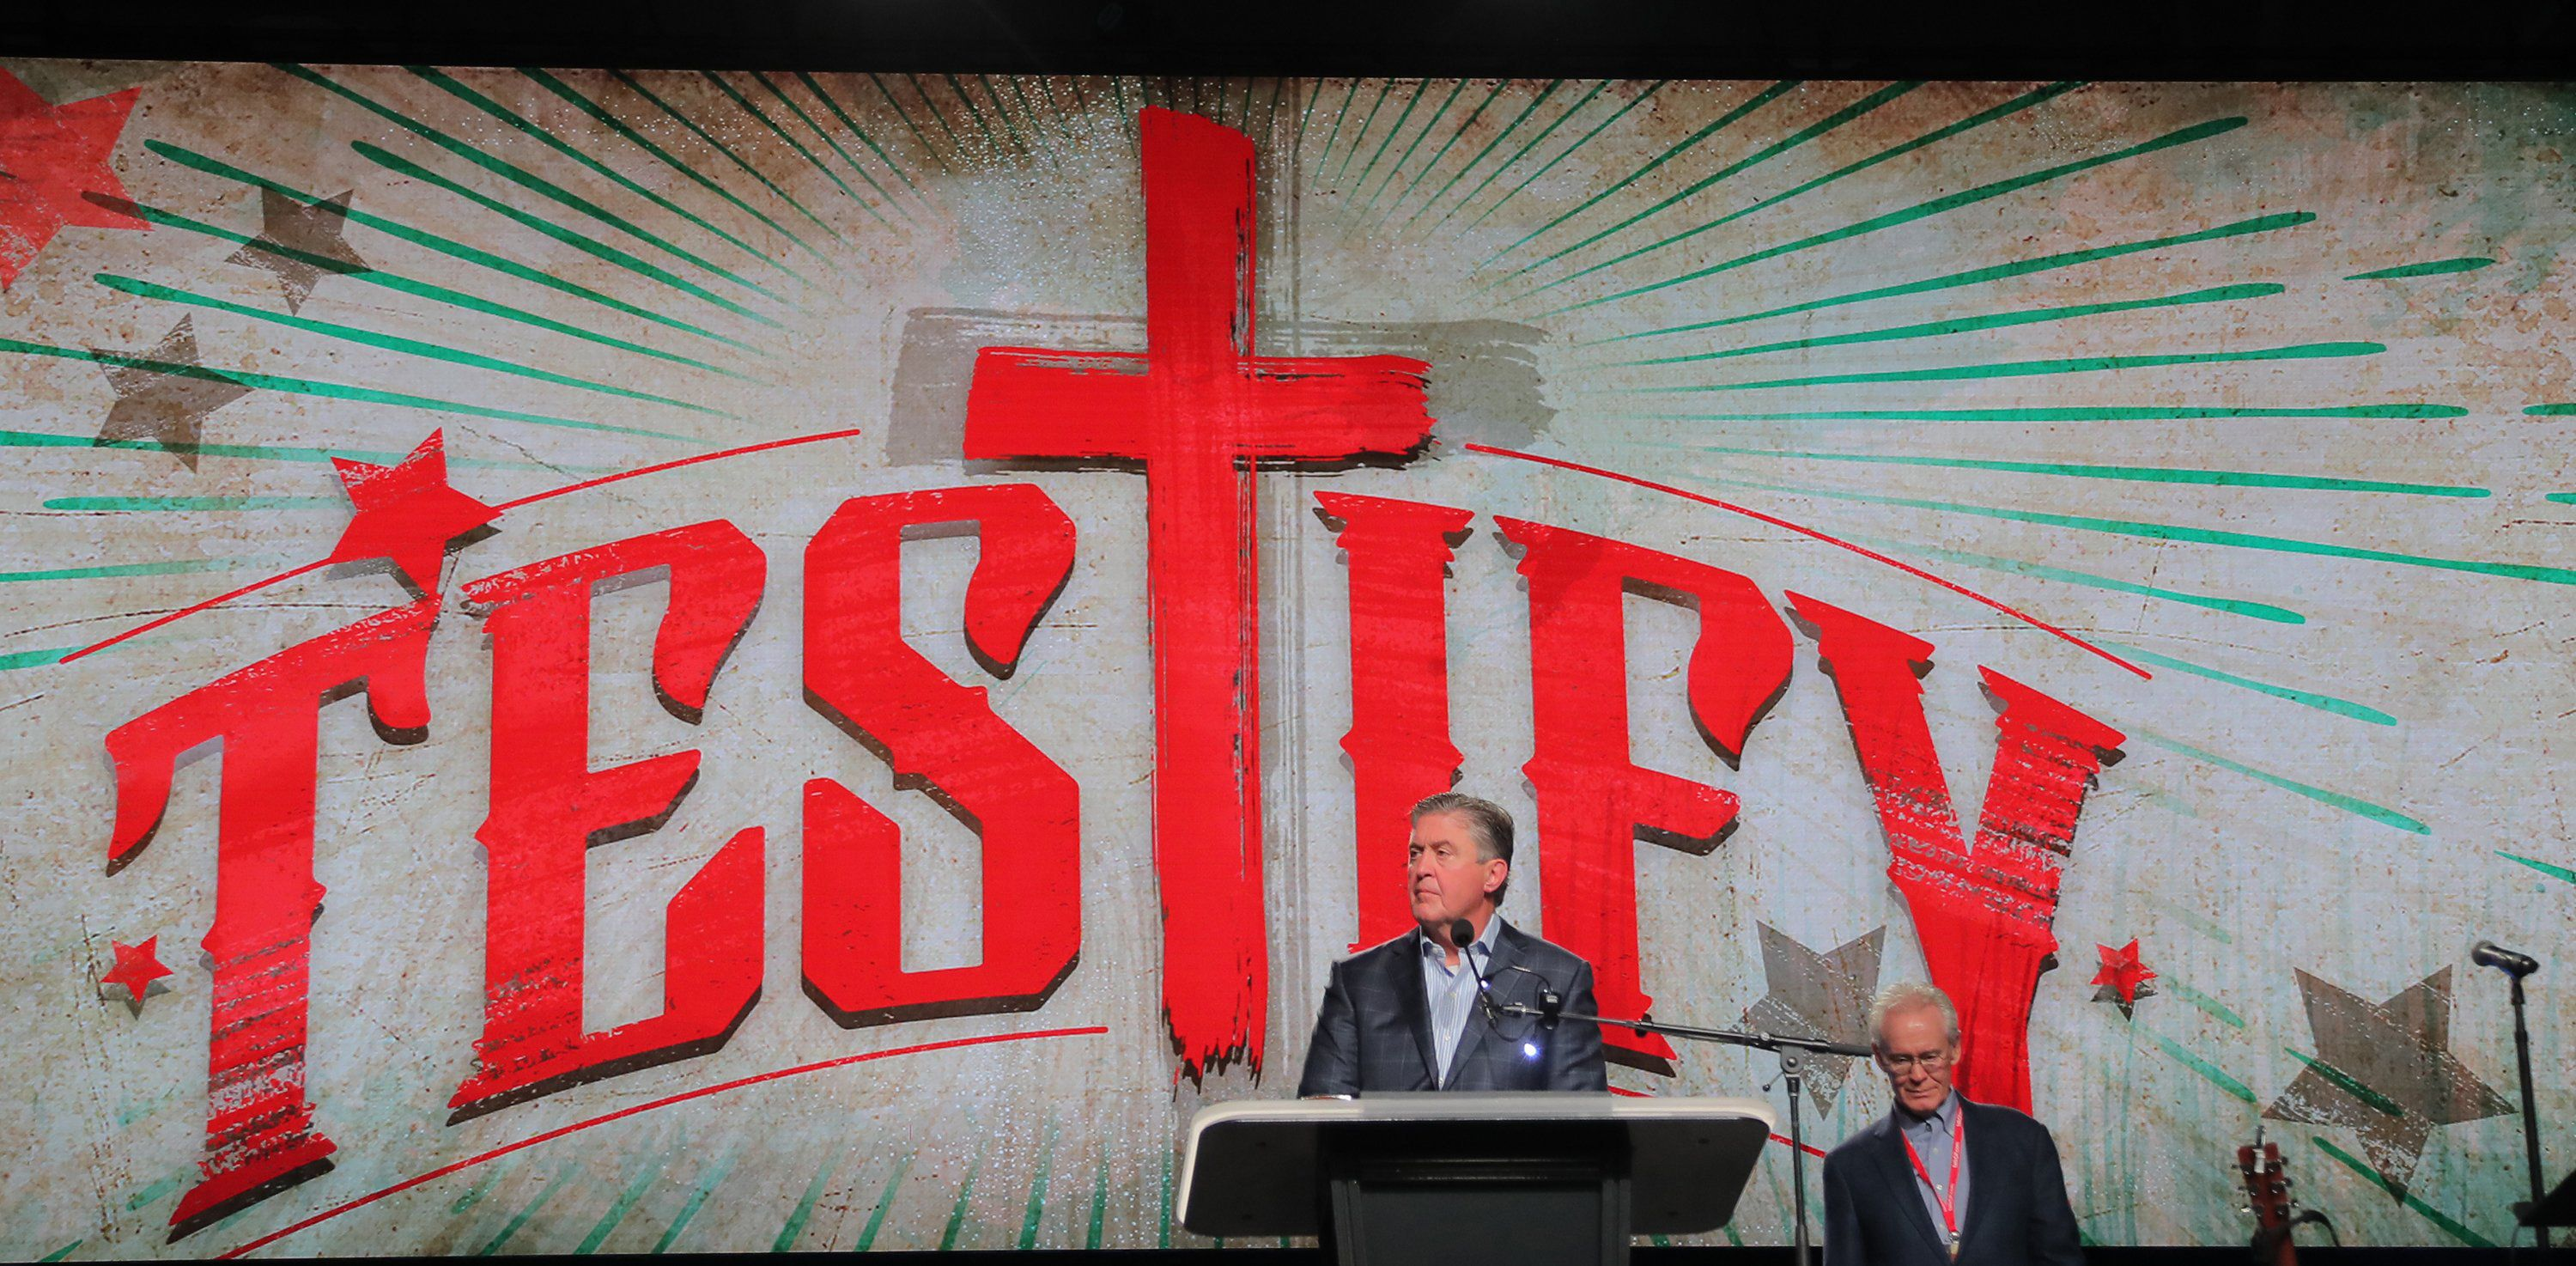 Dr. Steve Gaines, president of the Southern Baptist Convention, presides at the annual meeting on Tuesday, June 12, 2018 in Dallas, Texas. (Rodger Mallison/Fort Worth Star-Telegram/TNS via Getty Images)